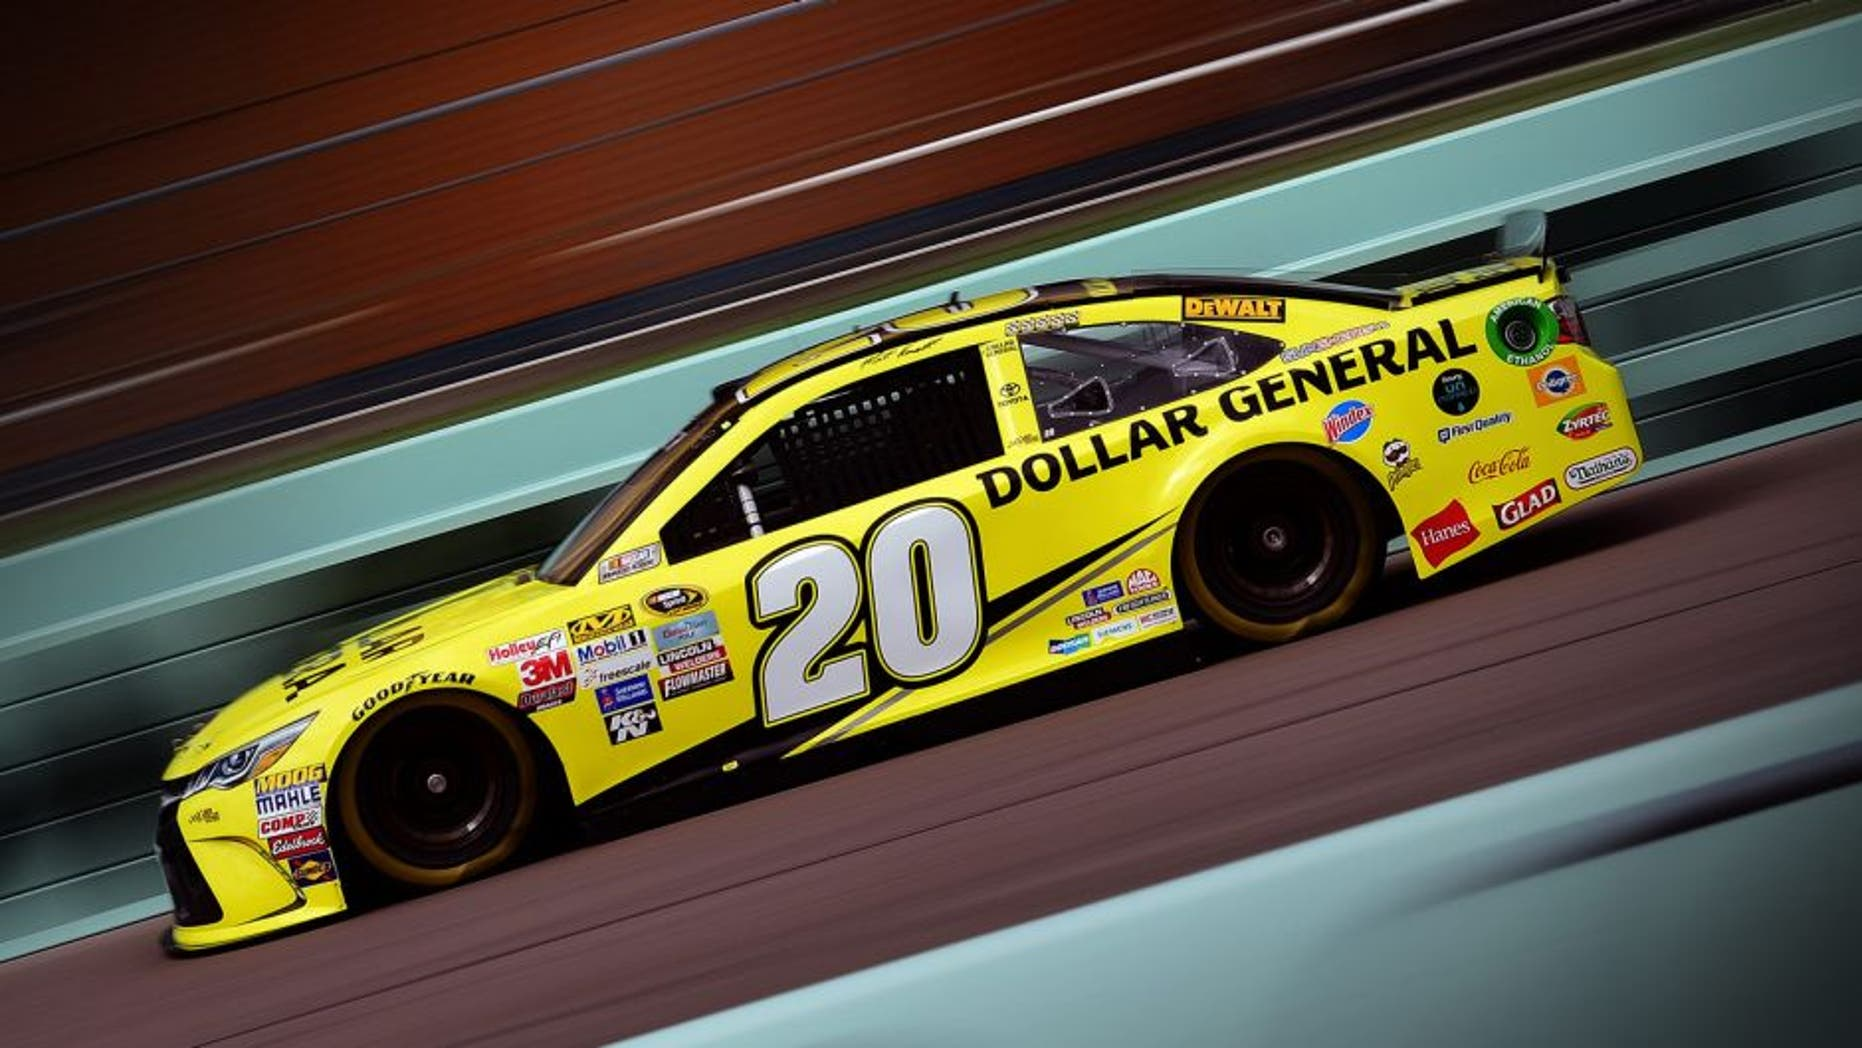 HOMESTEAD, FL - NOVEMBER 20: Matt Kenseth, driver of the #20 Dollar General Toyota, practices for the NASCAR Sprint Cup Series Ford EcoBoost 400 at Homestead-Miami Speedway on November 20, 2015 in Homestead, Florida. (Photo by Jared C. Tilton/NASCAR via Getty Images)